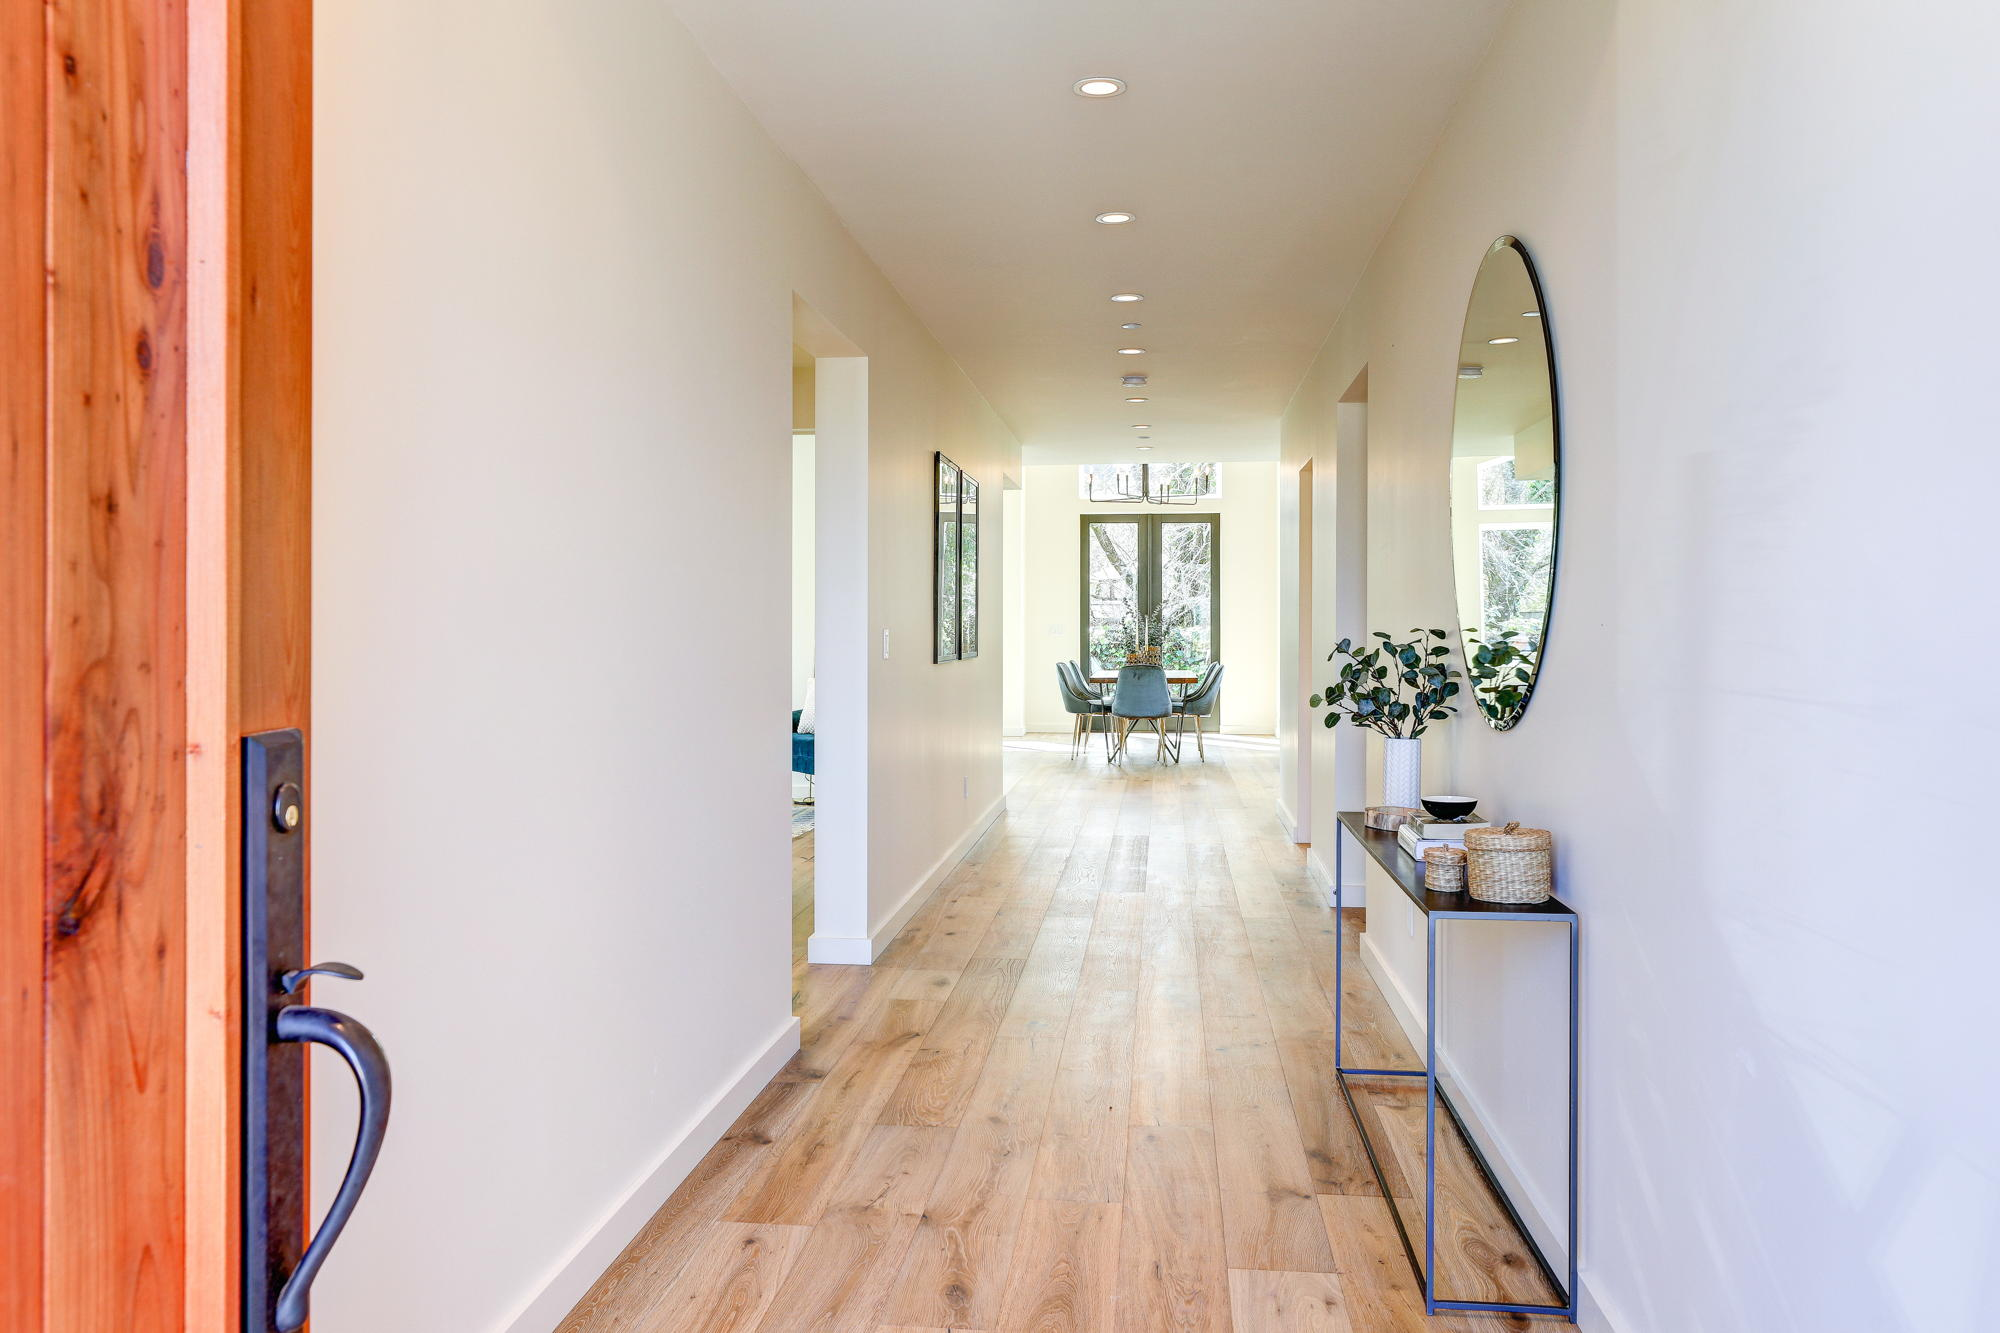 38 Ryan Avenue, Mill Valley - Sycamore Park Homes for sale - 05- Listed by Team Own Marin with Compass Real Estate.jpg